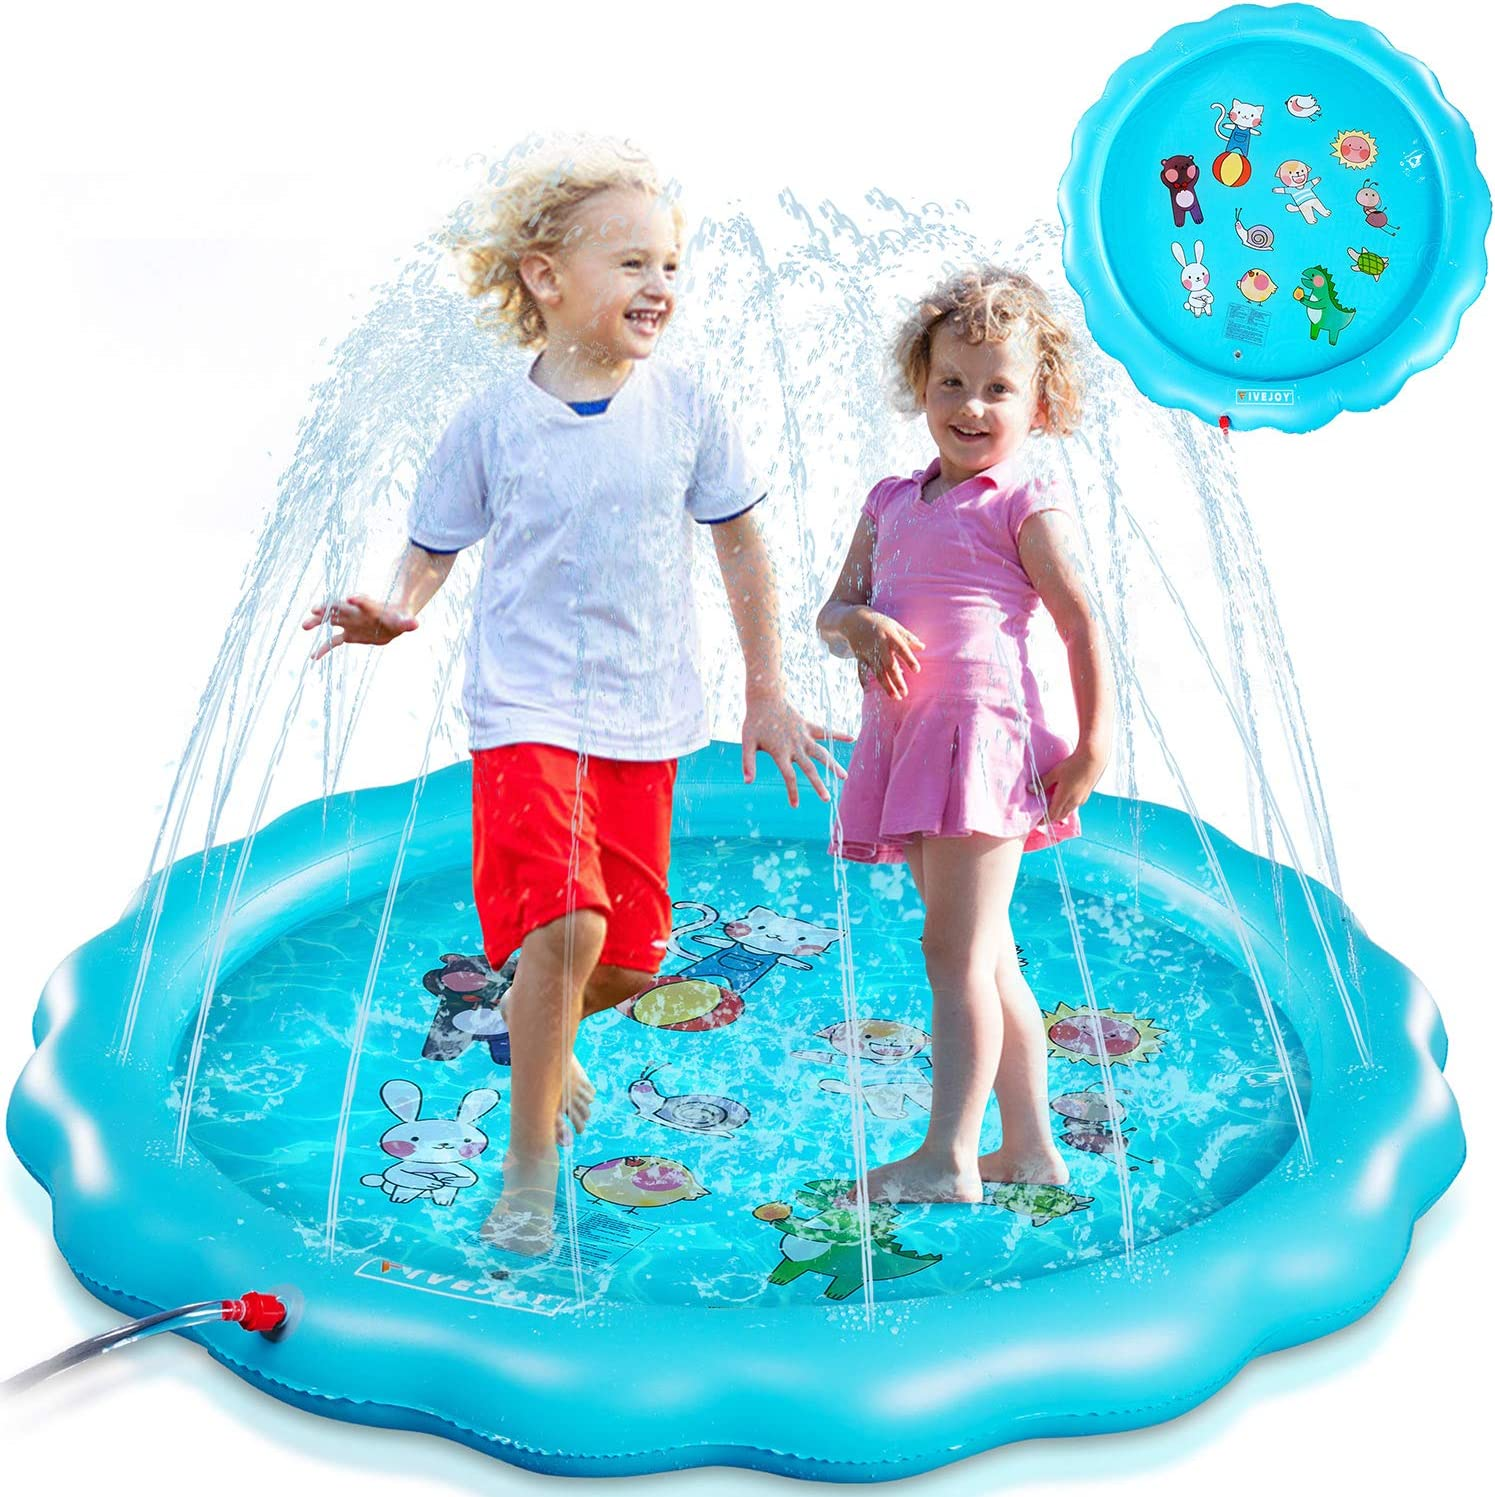 67 Splash Pad for Babies and Toddlers Fun Backyard Party Outdoor Summer Water Toys /& Splash Play Mat for Girls Boys Wading Swimming Kiddie Pool FiveJoy Sprinkler for Kids